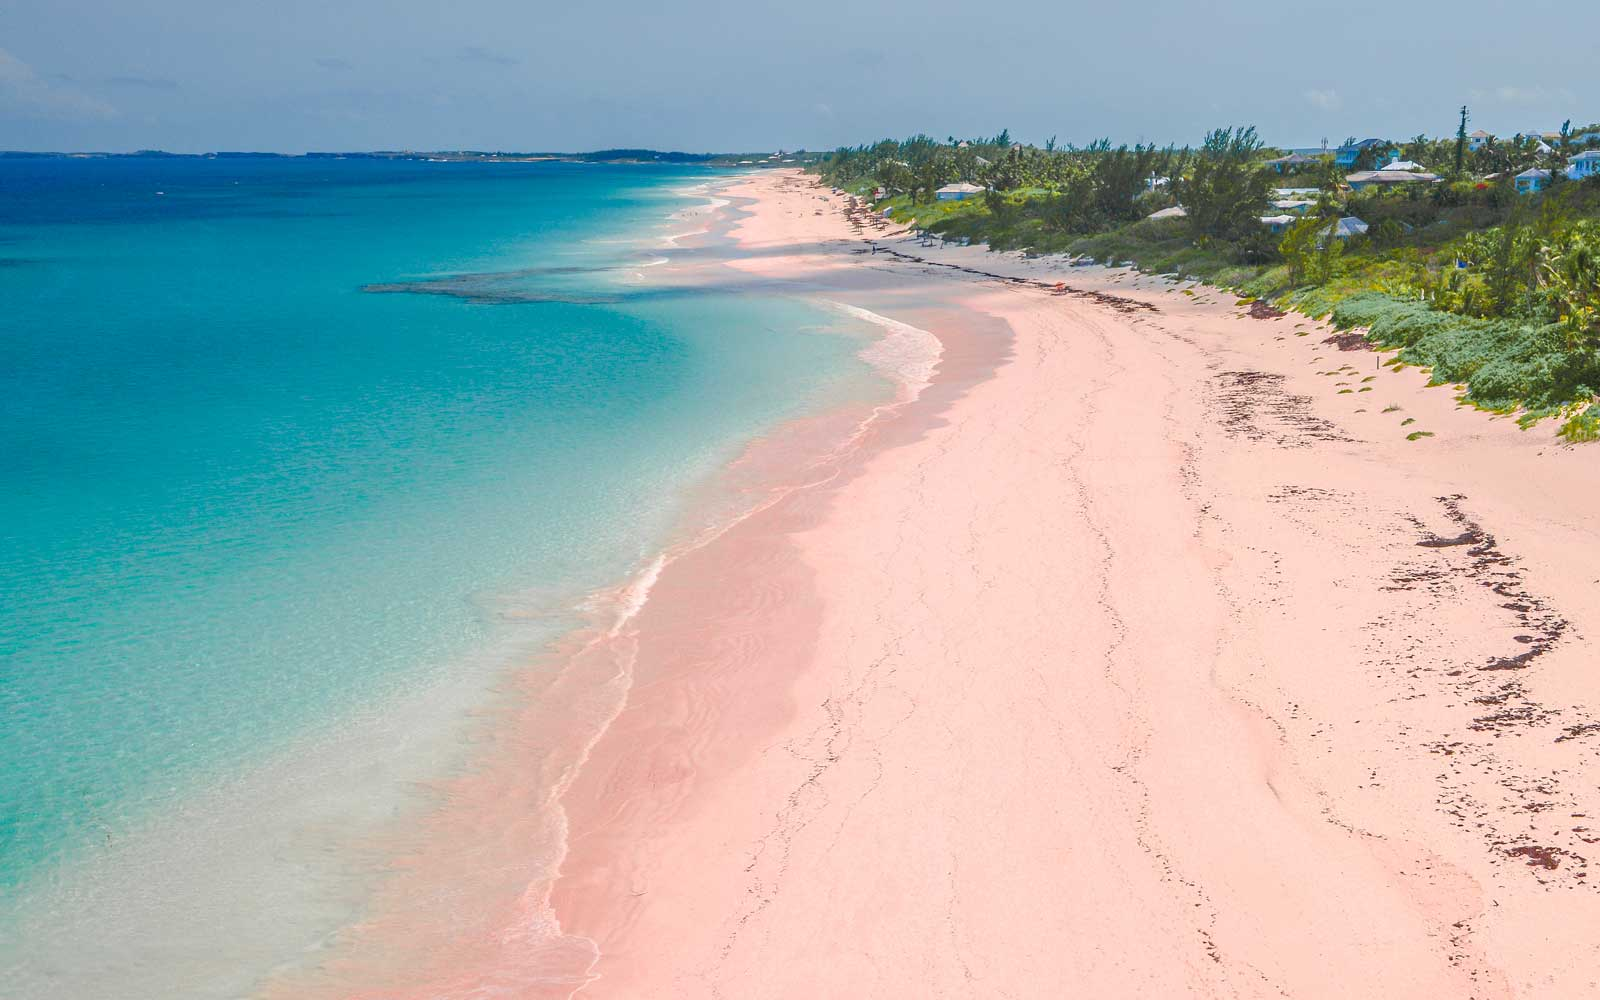 The World's Most Beautiful Pink Sand Beaches